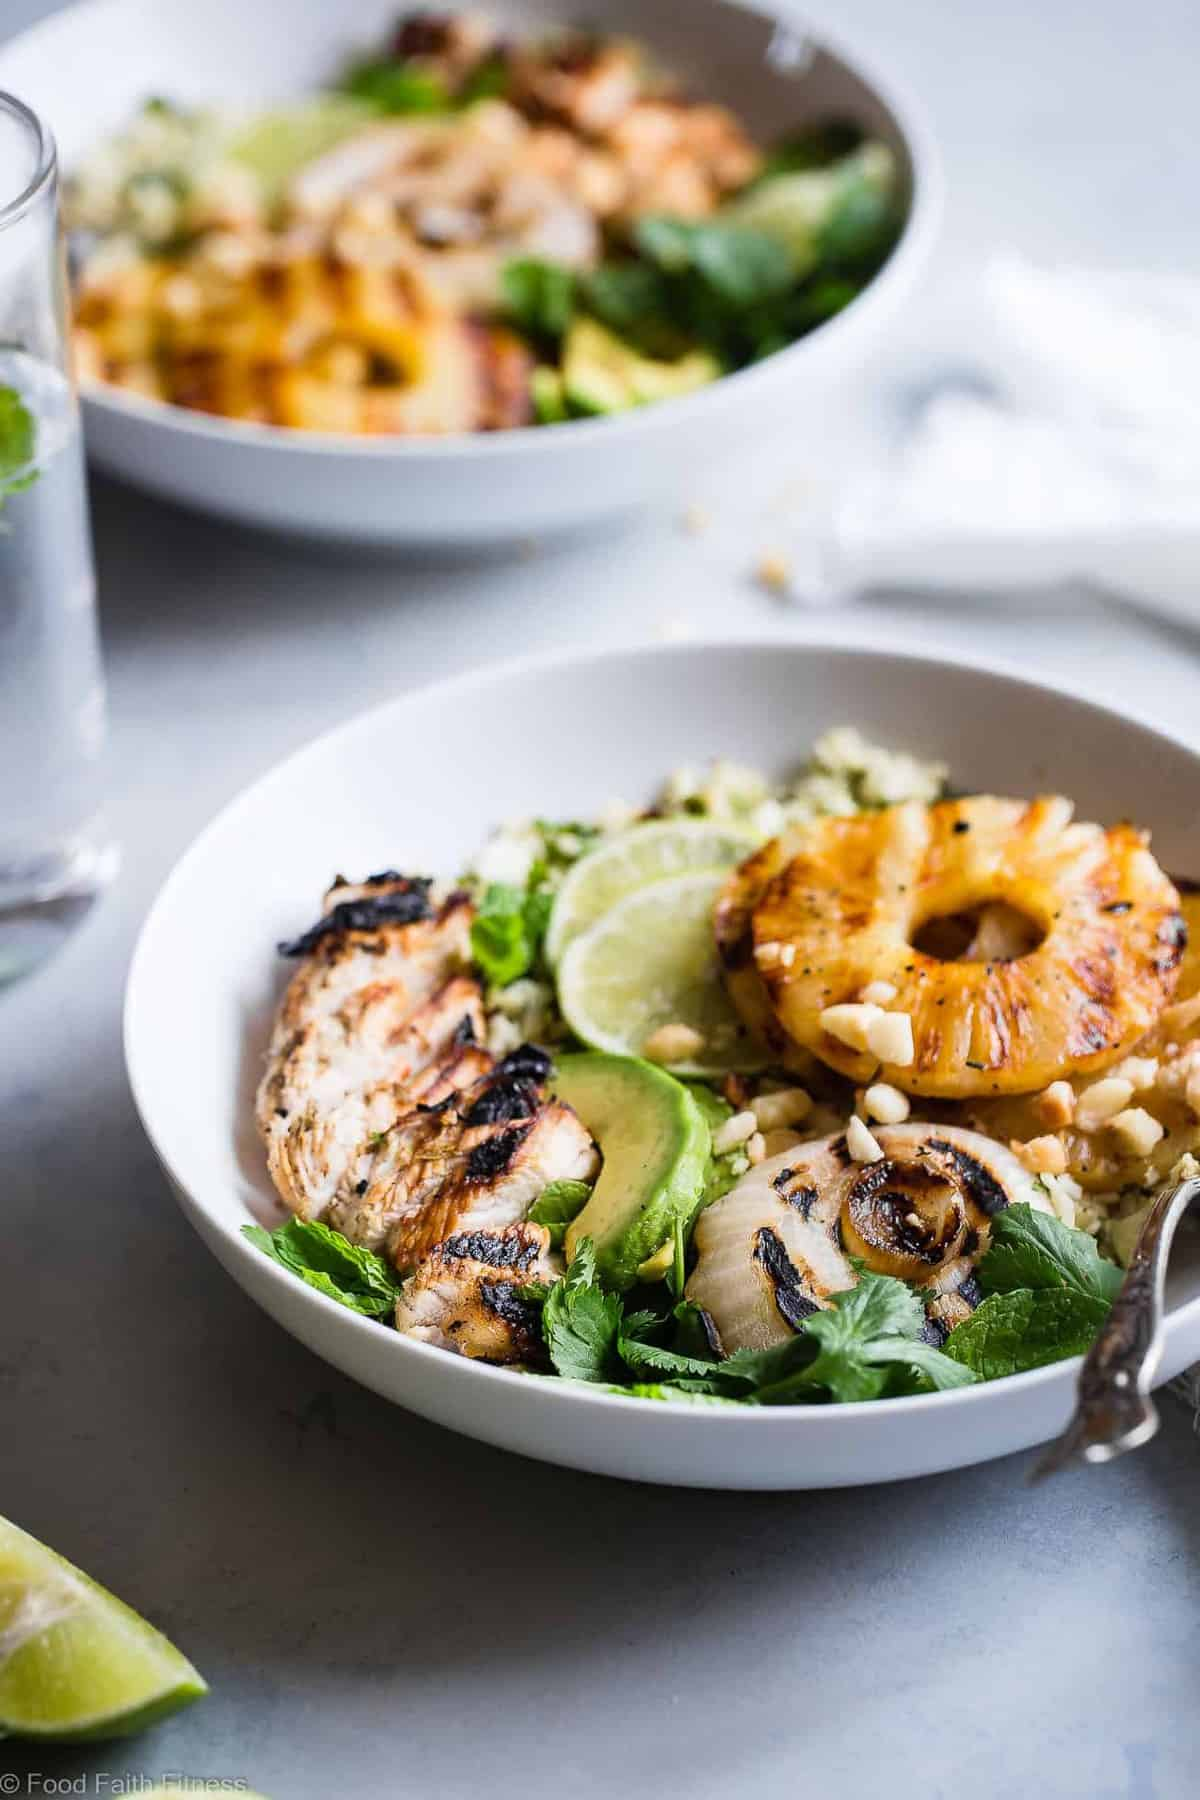 Grilled Tropical Chicken Bowls - These paleo and whole30 compliant Grilled Tropical Chicken bowls are an easy, healthy and gluten free weeknight dinner loaded with sweet and tangy island flavors! Sure to be a crowd pleaser! | #Foodfaithfitness | #Paleo #Whole30 #Glutenfree #Healthy #Chickendinner